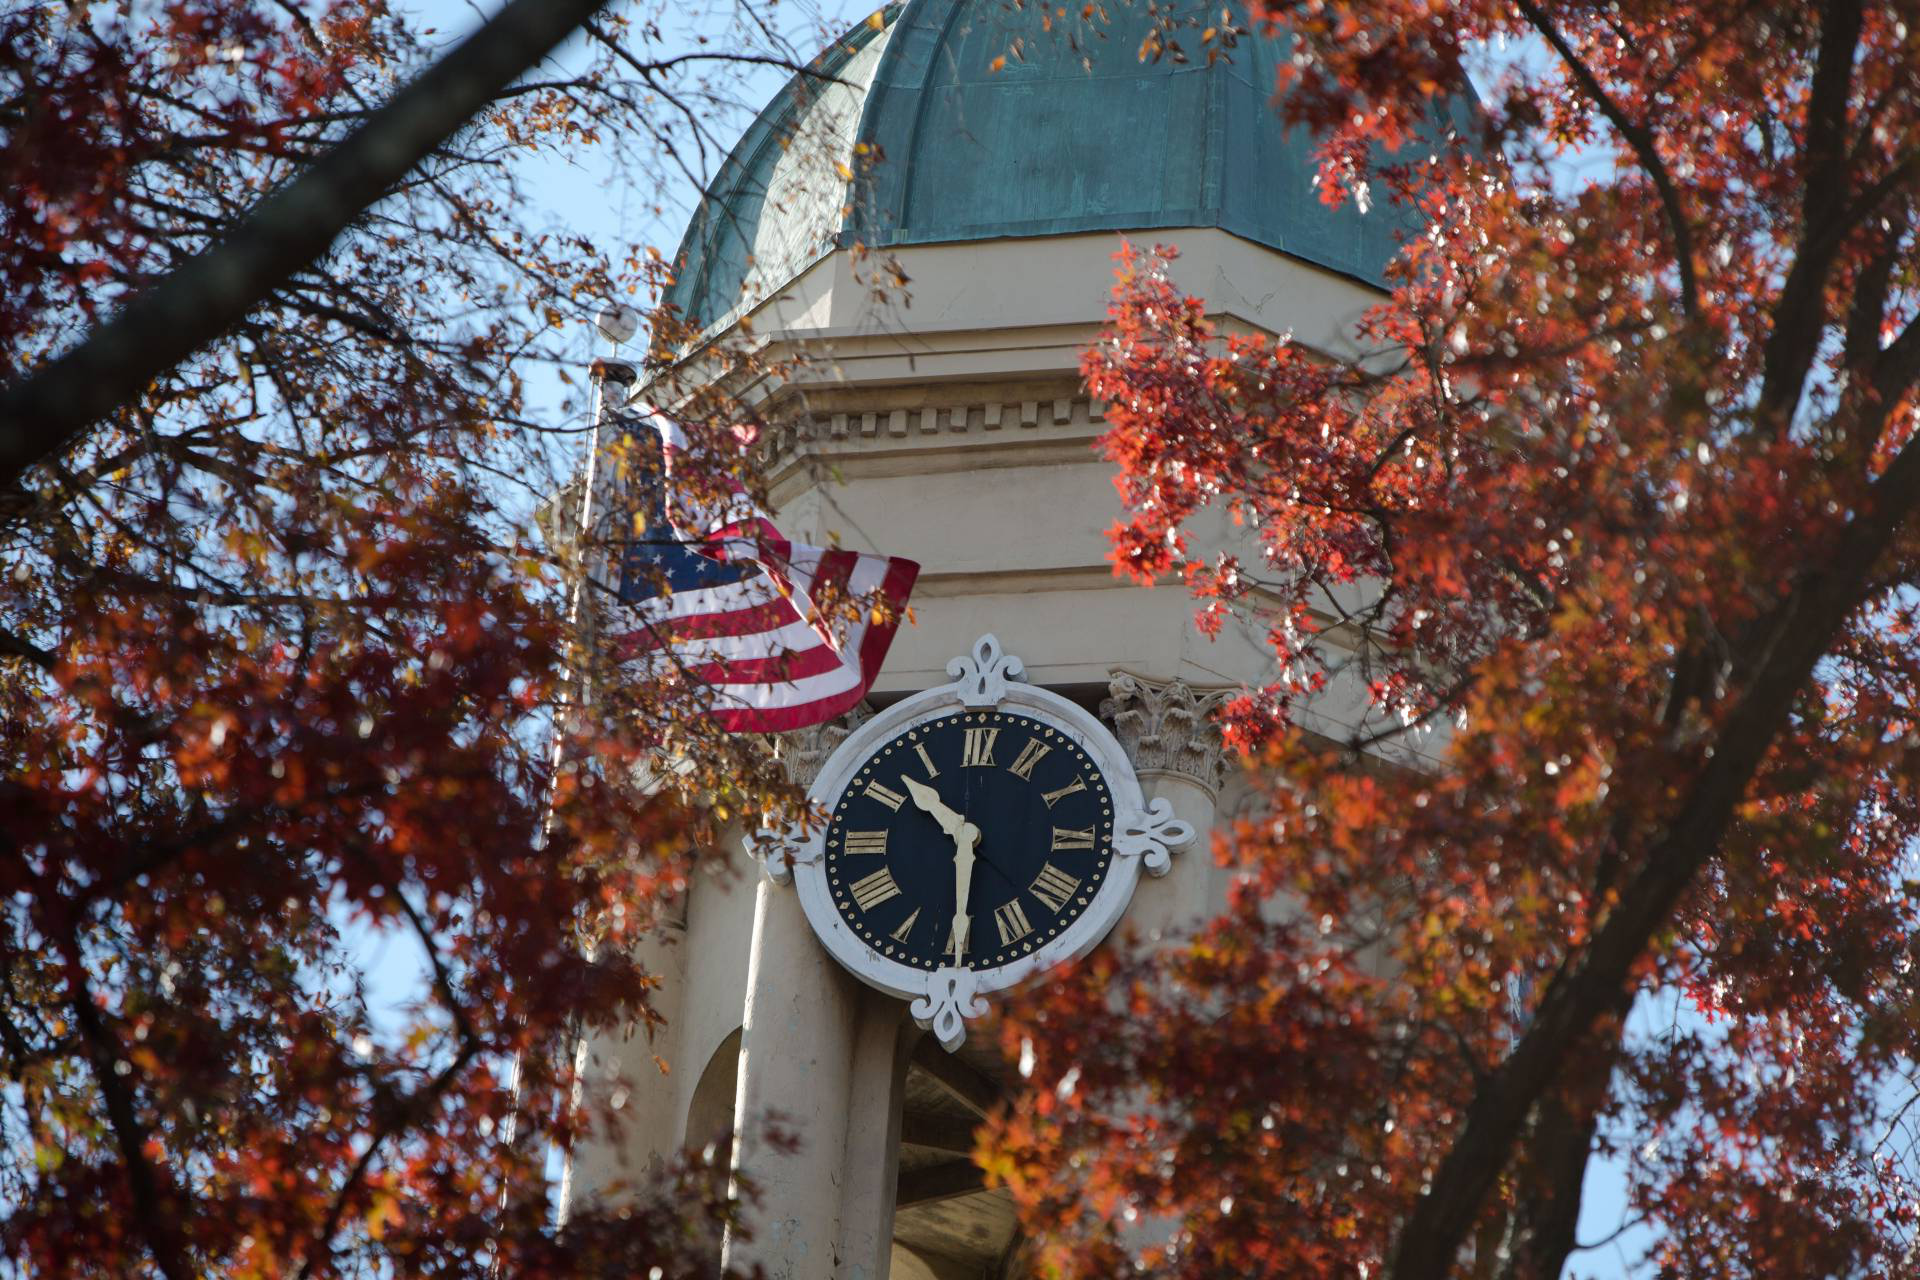 The cupola of Nassau Hall showing its clock and an American flag